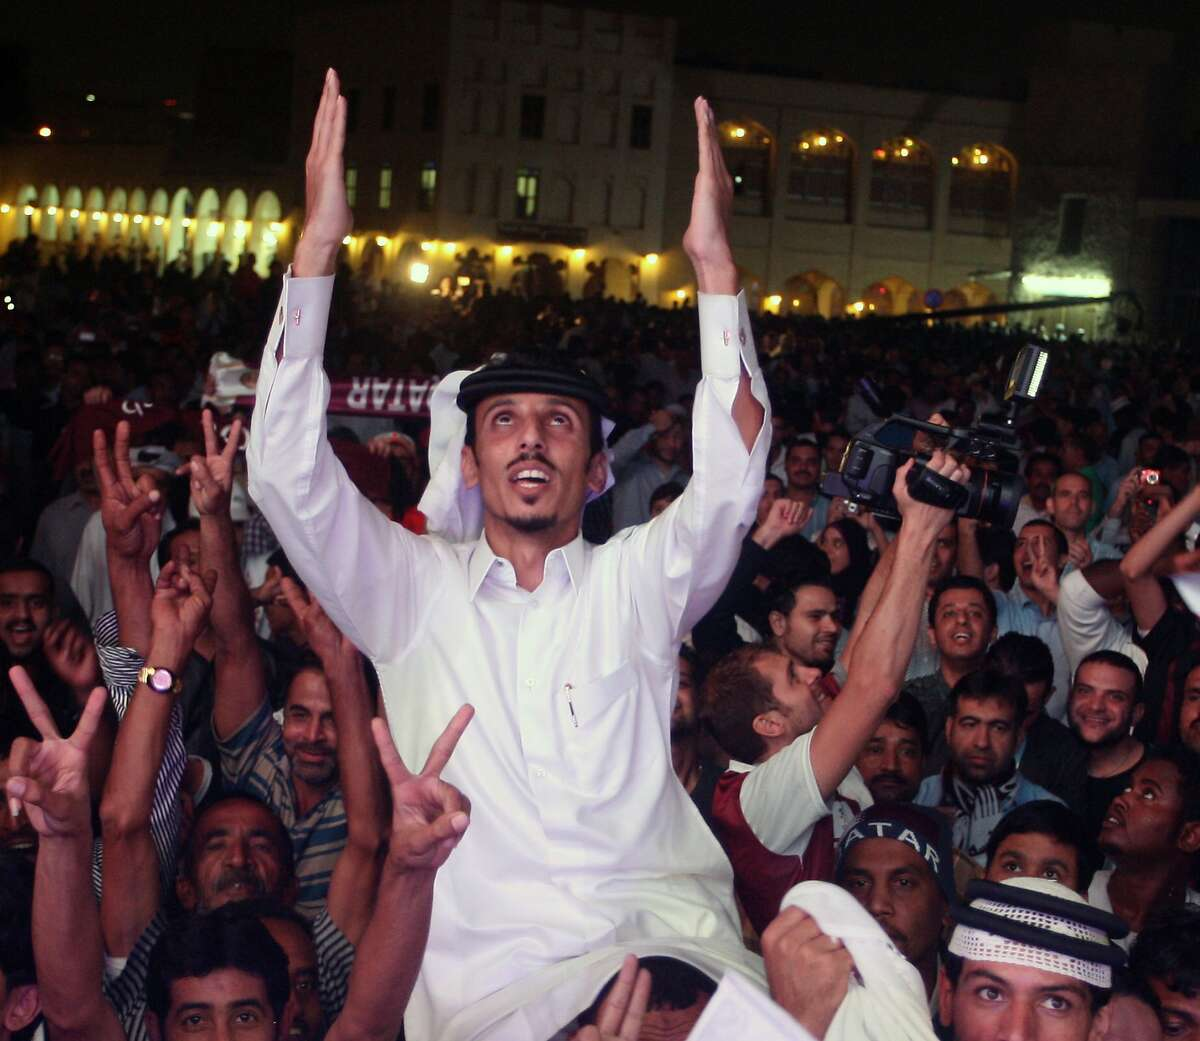 Qataris react in the streets, after the announcement that Qatar will host the soccer World Cup in 2022, in Doha, Thursday, Dec. 2, 2010. (AP Photo/Osama Faisal)